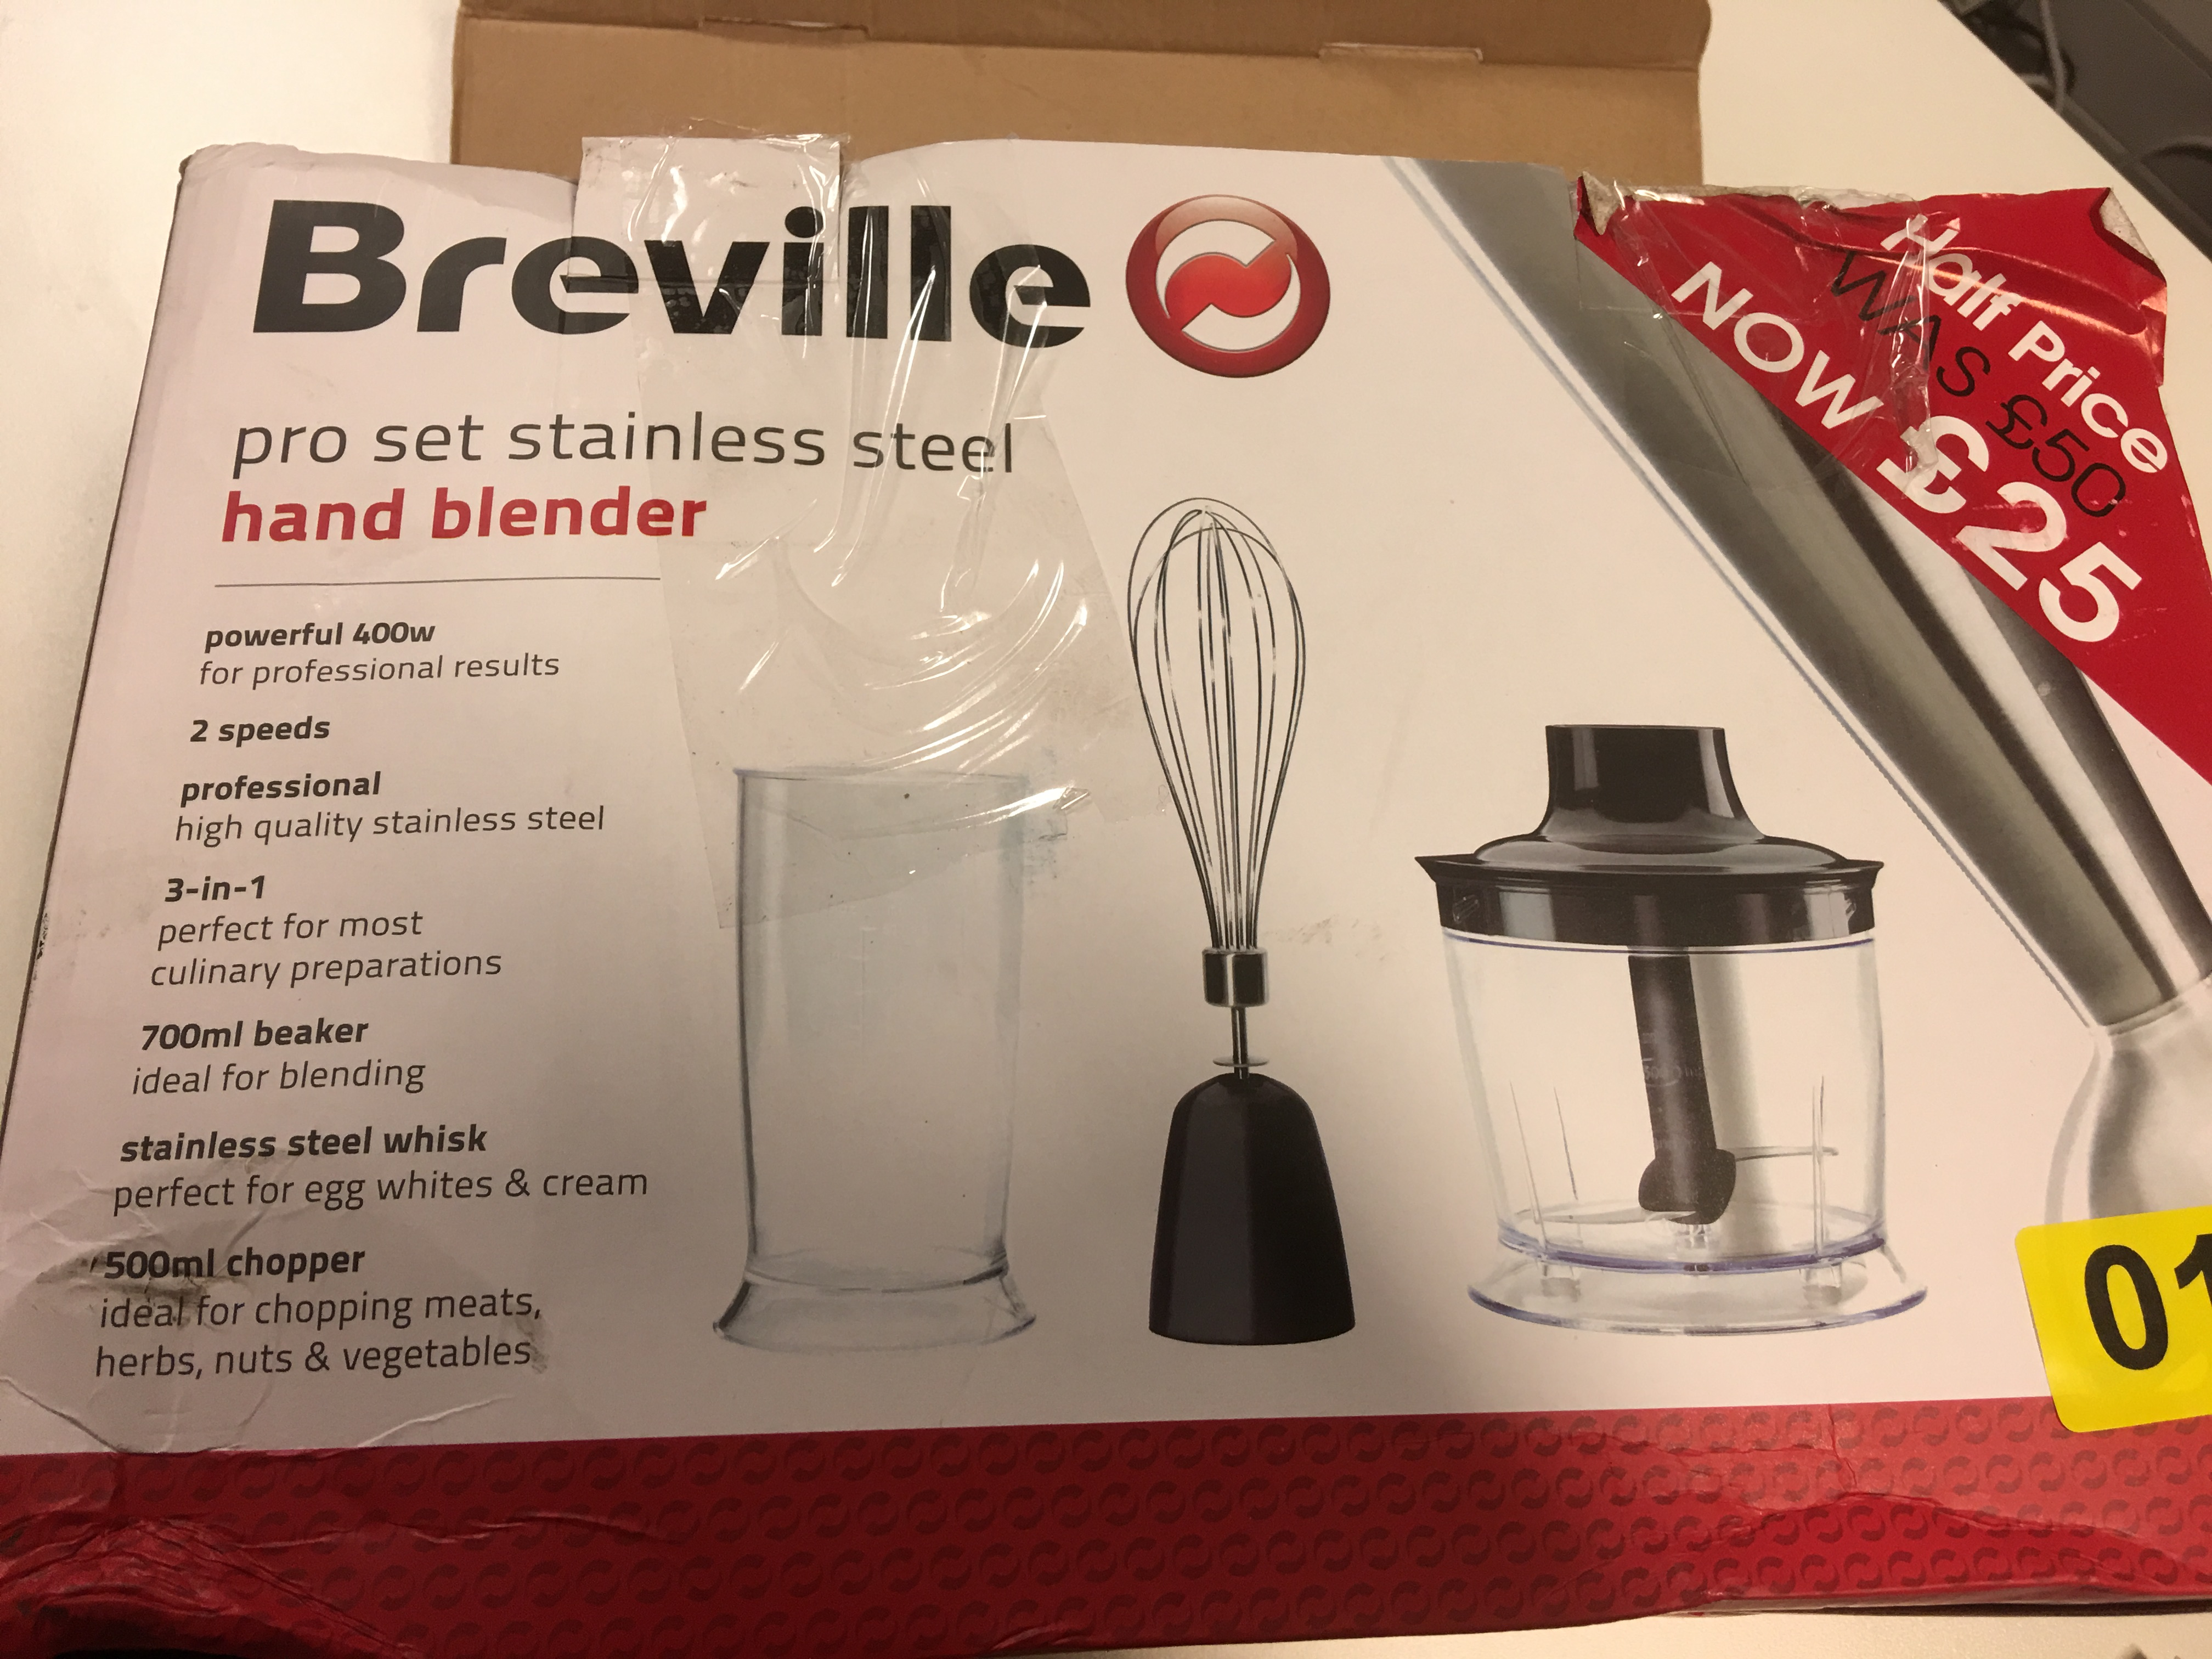 Lot 35 - Breville Stainless Steel Hand Blender - Y18